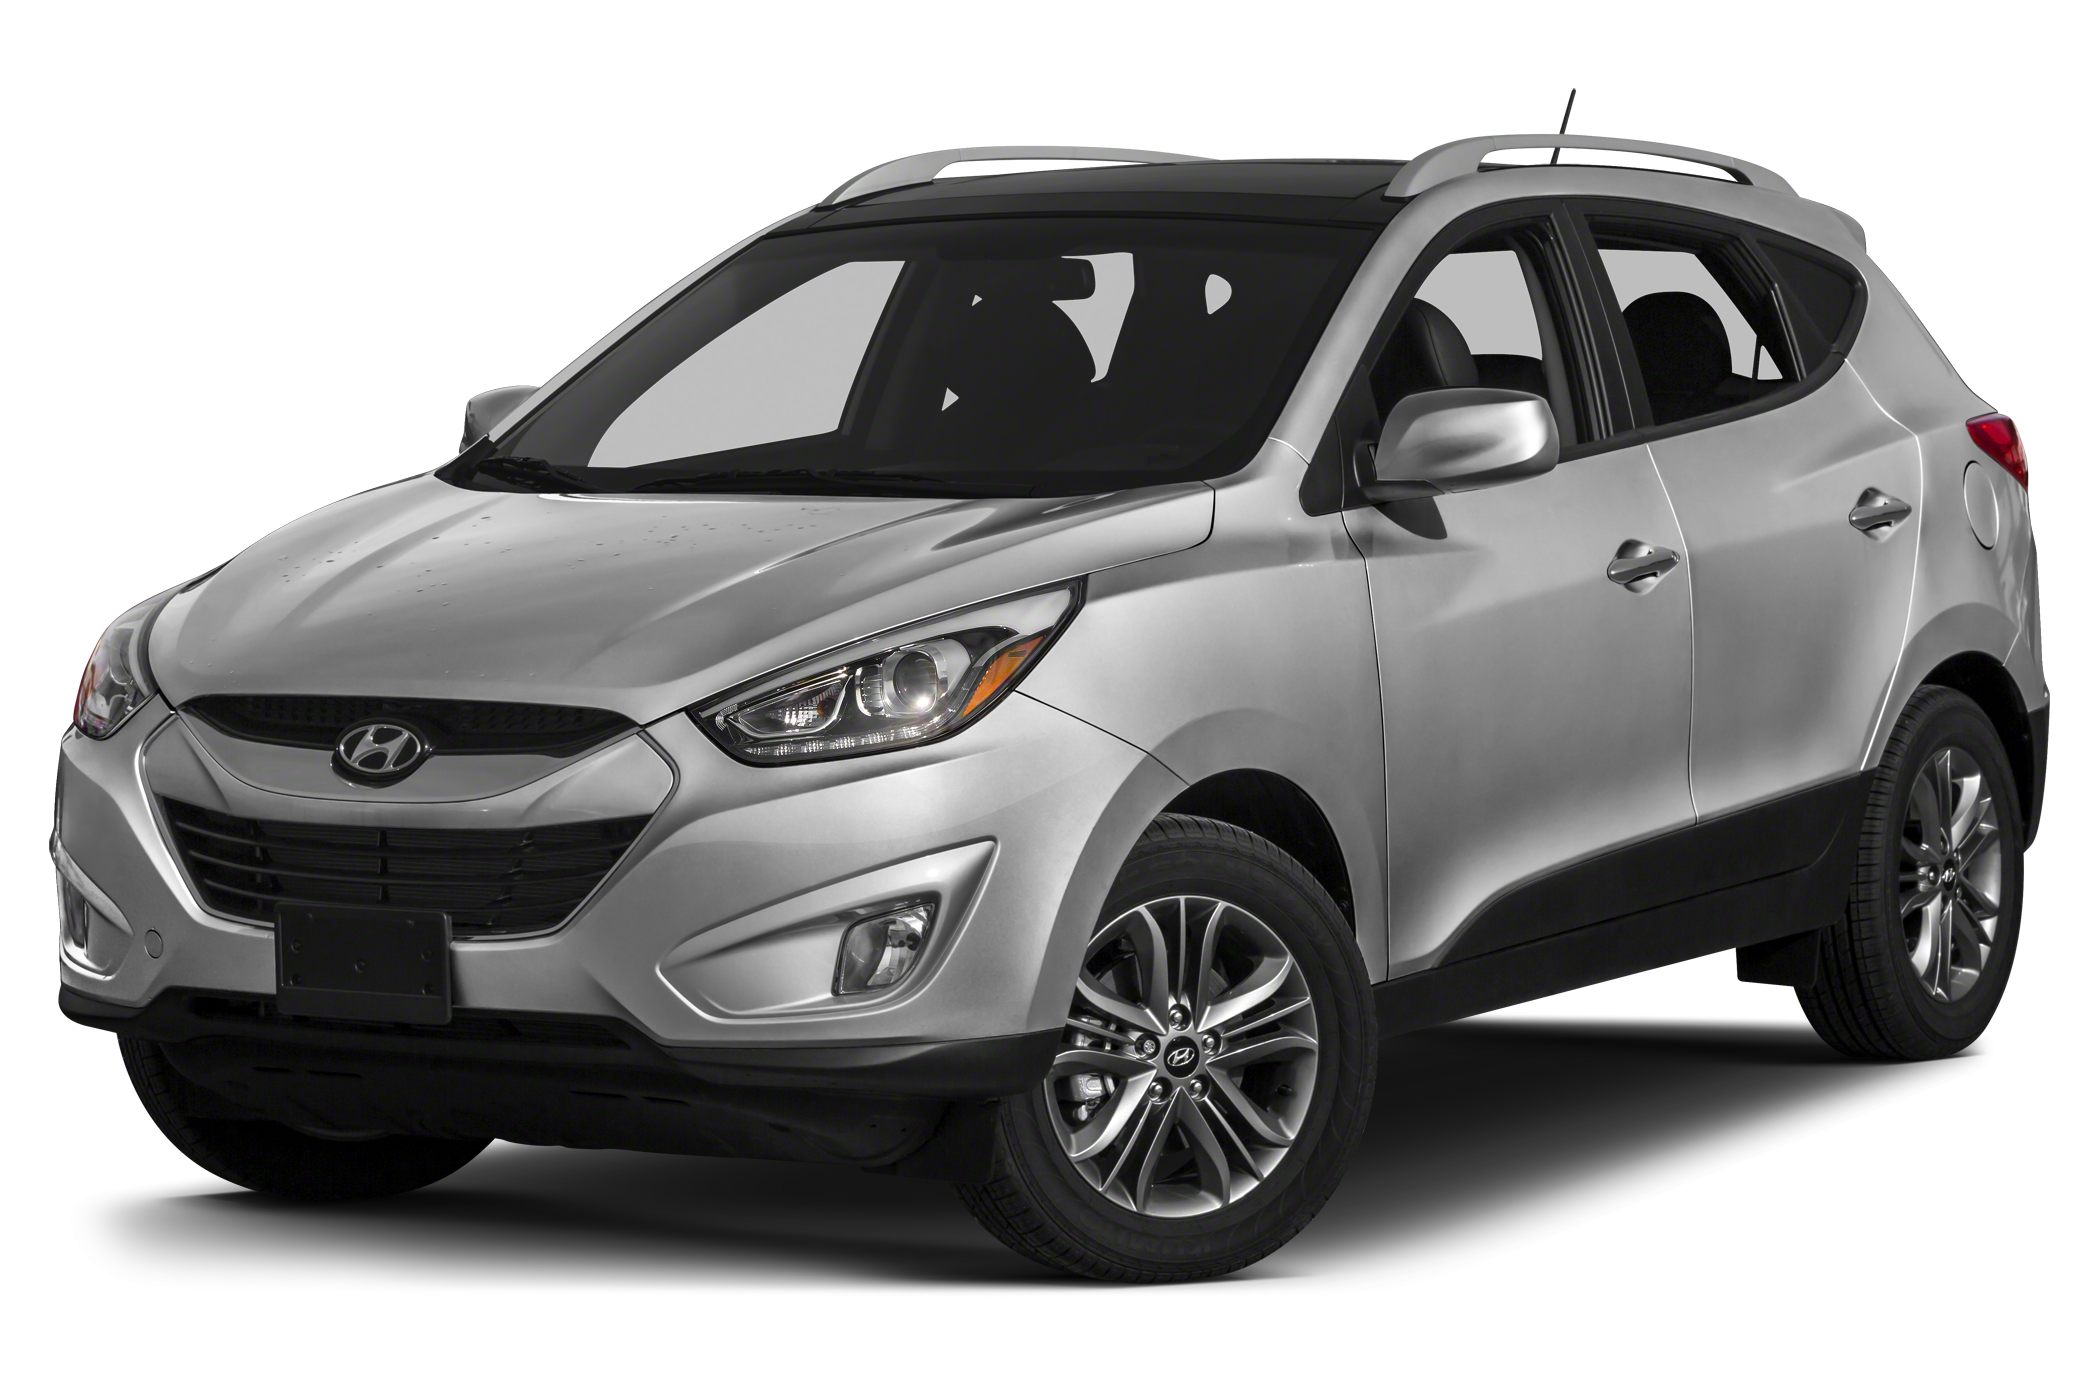 2015 Hyundai Tucson SE SUV for sale in Hicksville for $24,730 with 0 miles.